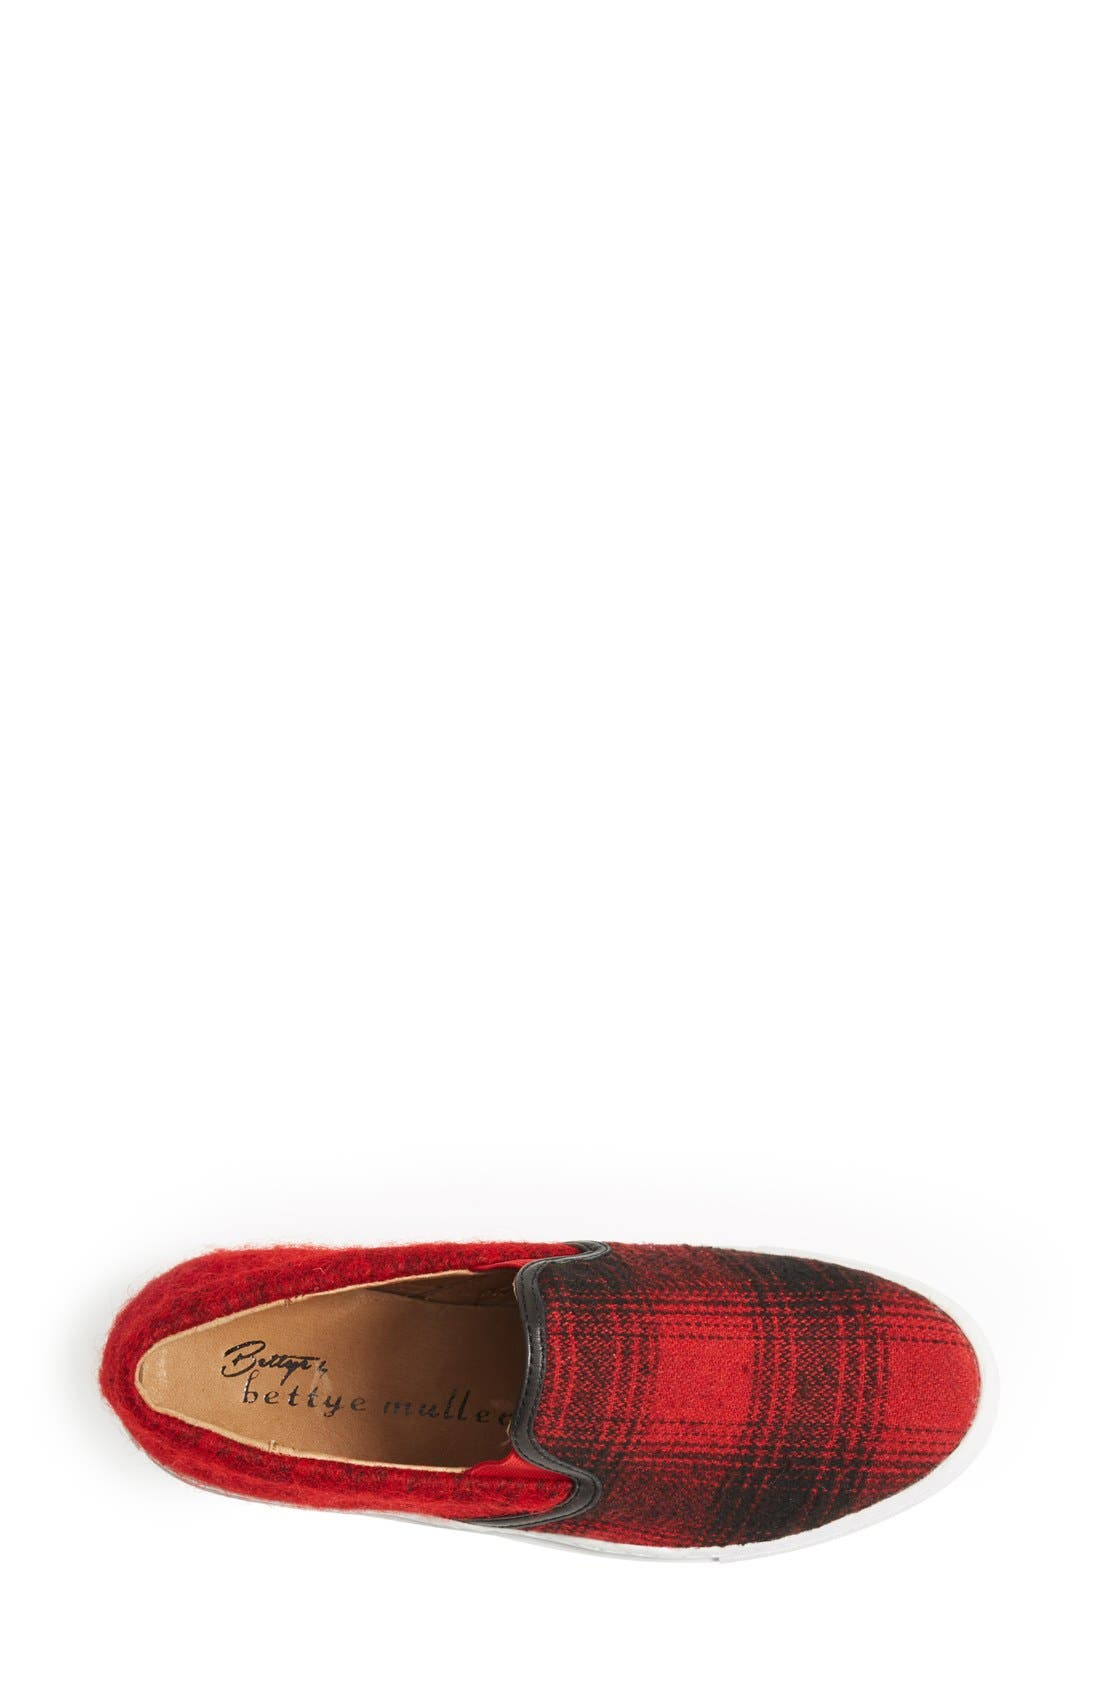 Alternate Image 3  - Bettye by Bettye Muller 'Bentley' Slip-On Sneaker (Women)